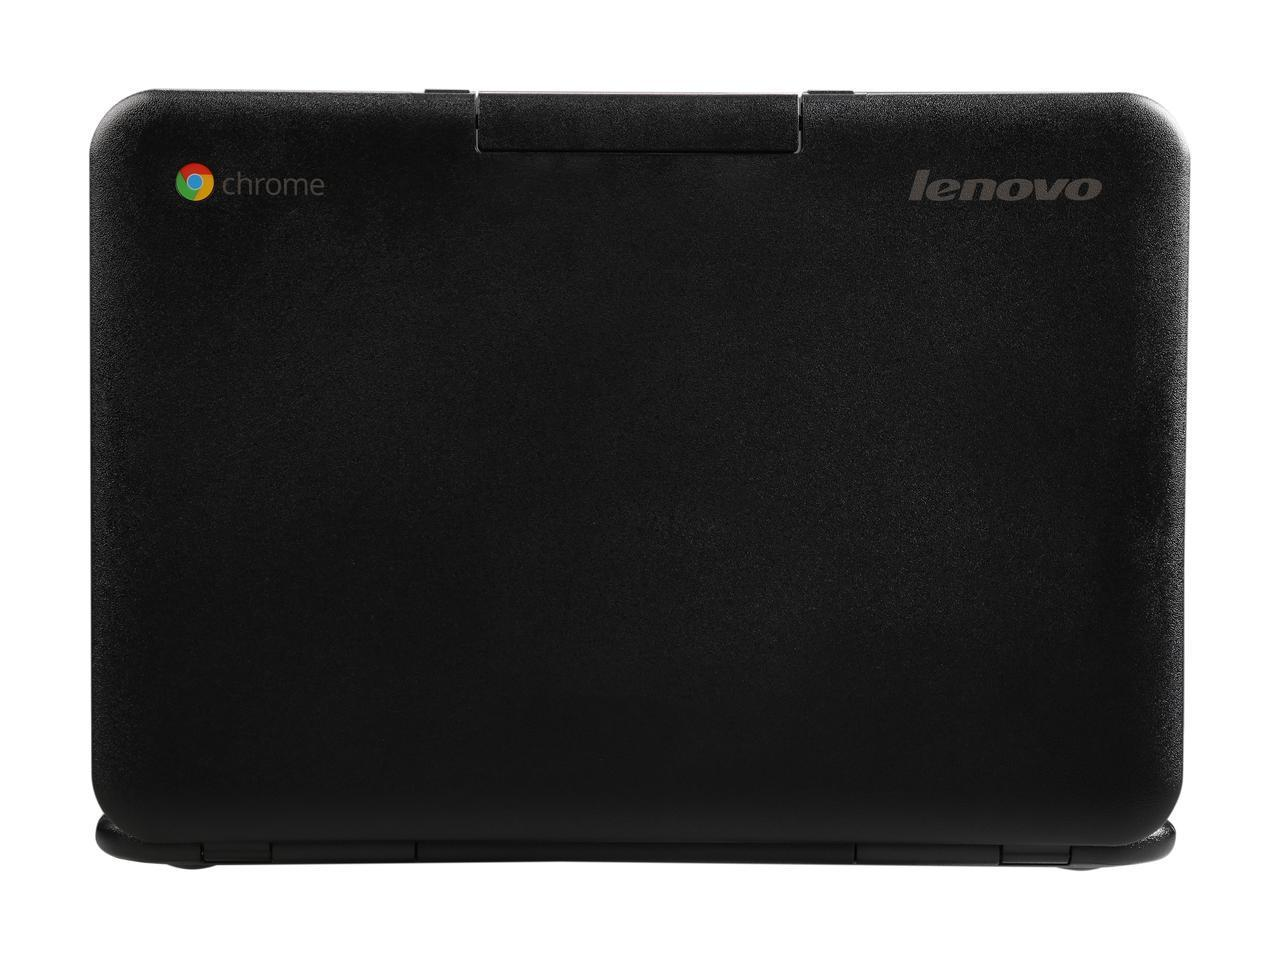 Lenovo Chromebook N21 11.6″ Intel Celeron 2.16GHz – 4GB RAM – 16GB SSD